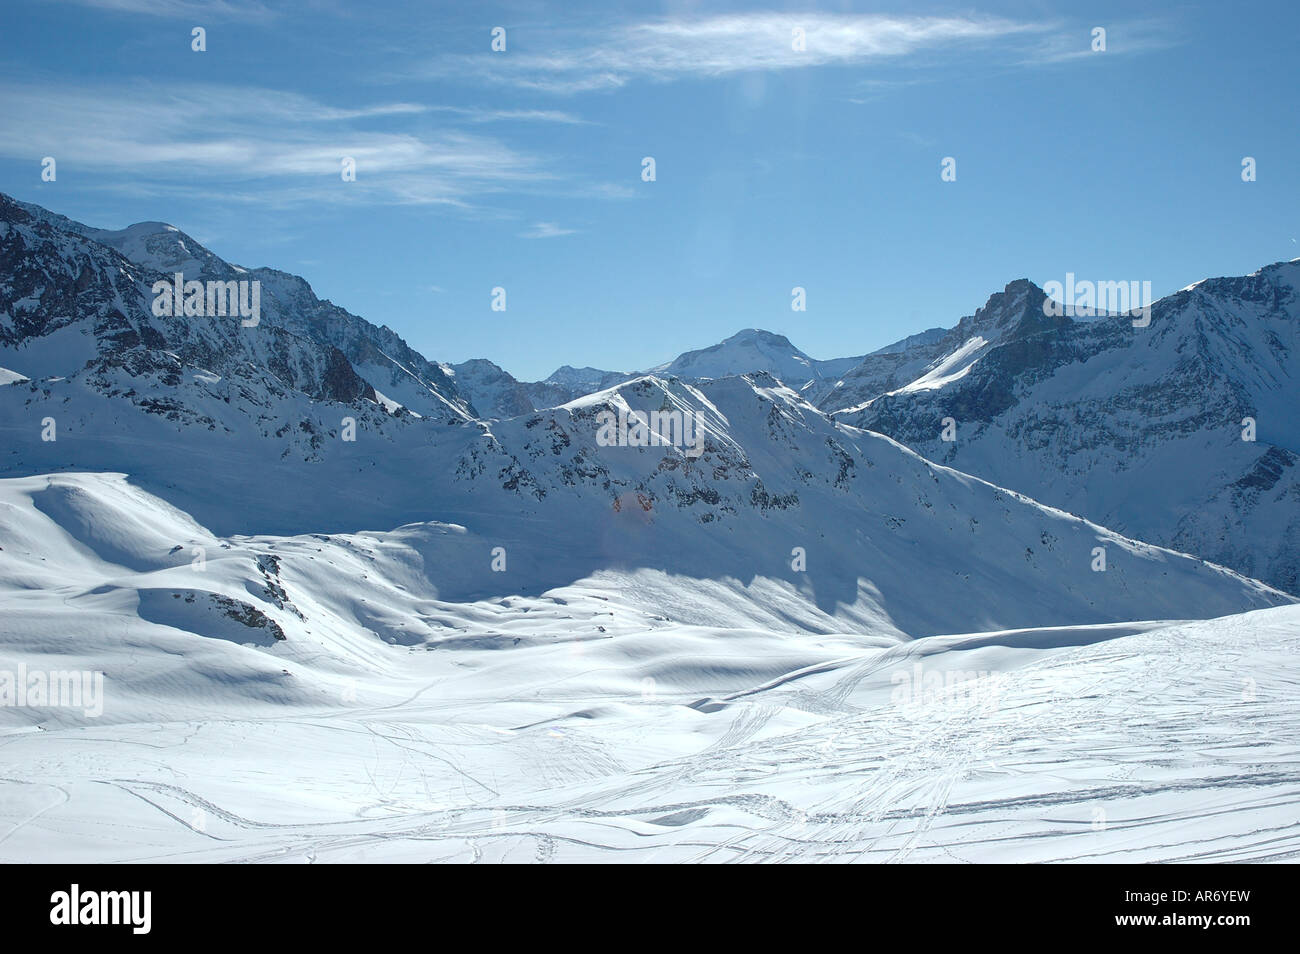 Snow covered mountain in the Alps, France, winter - Stock Image